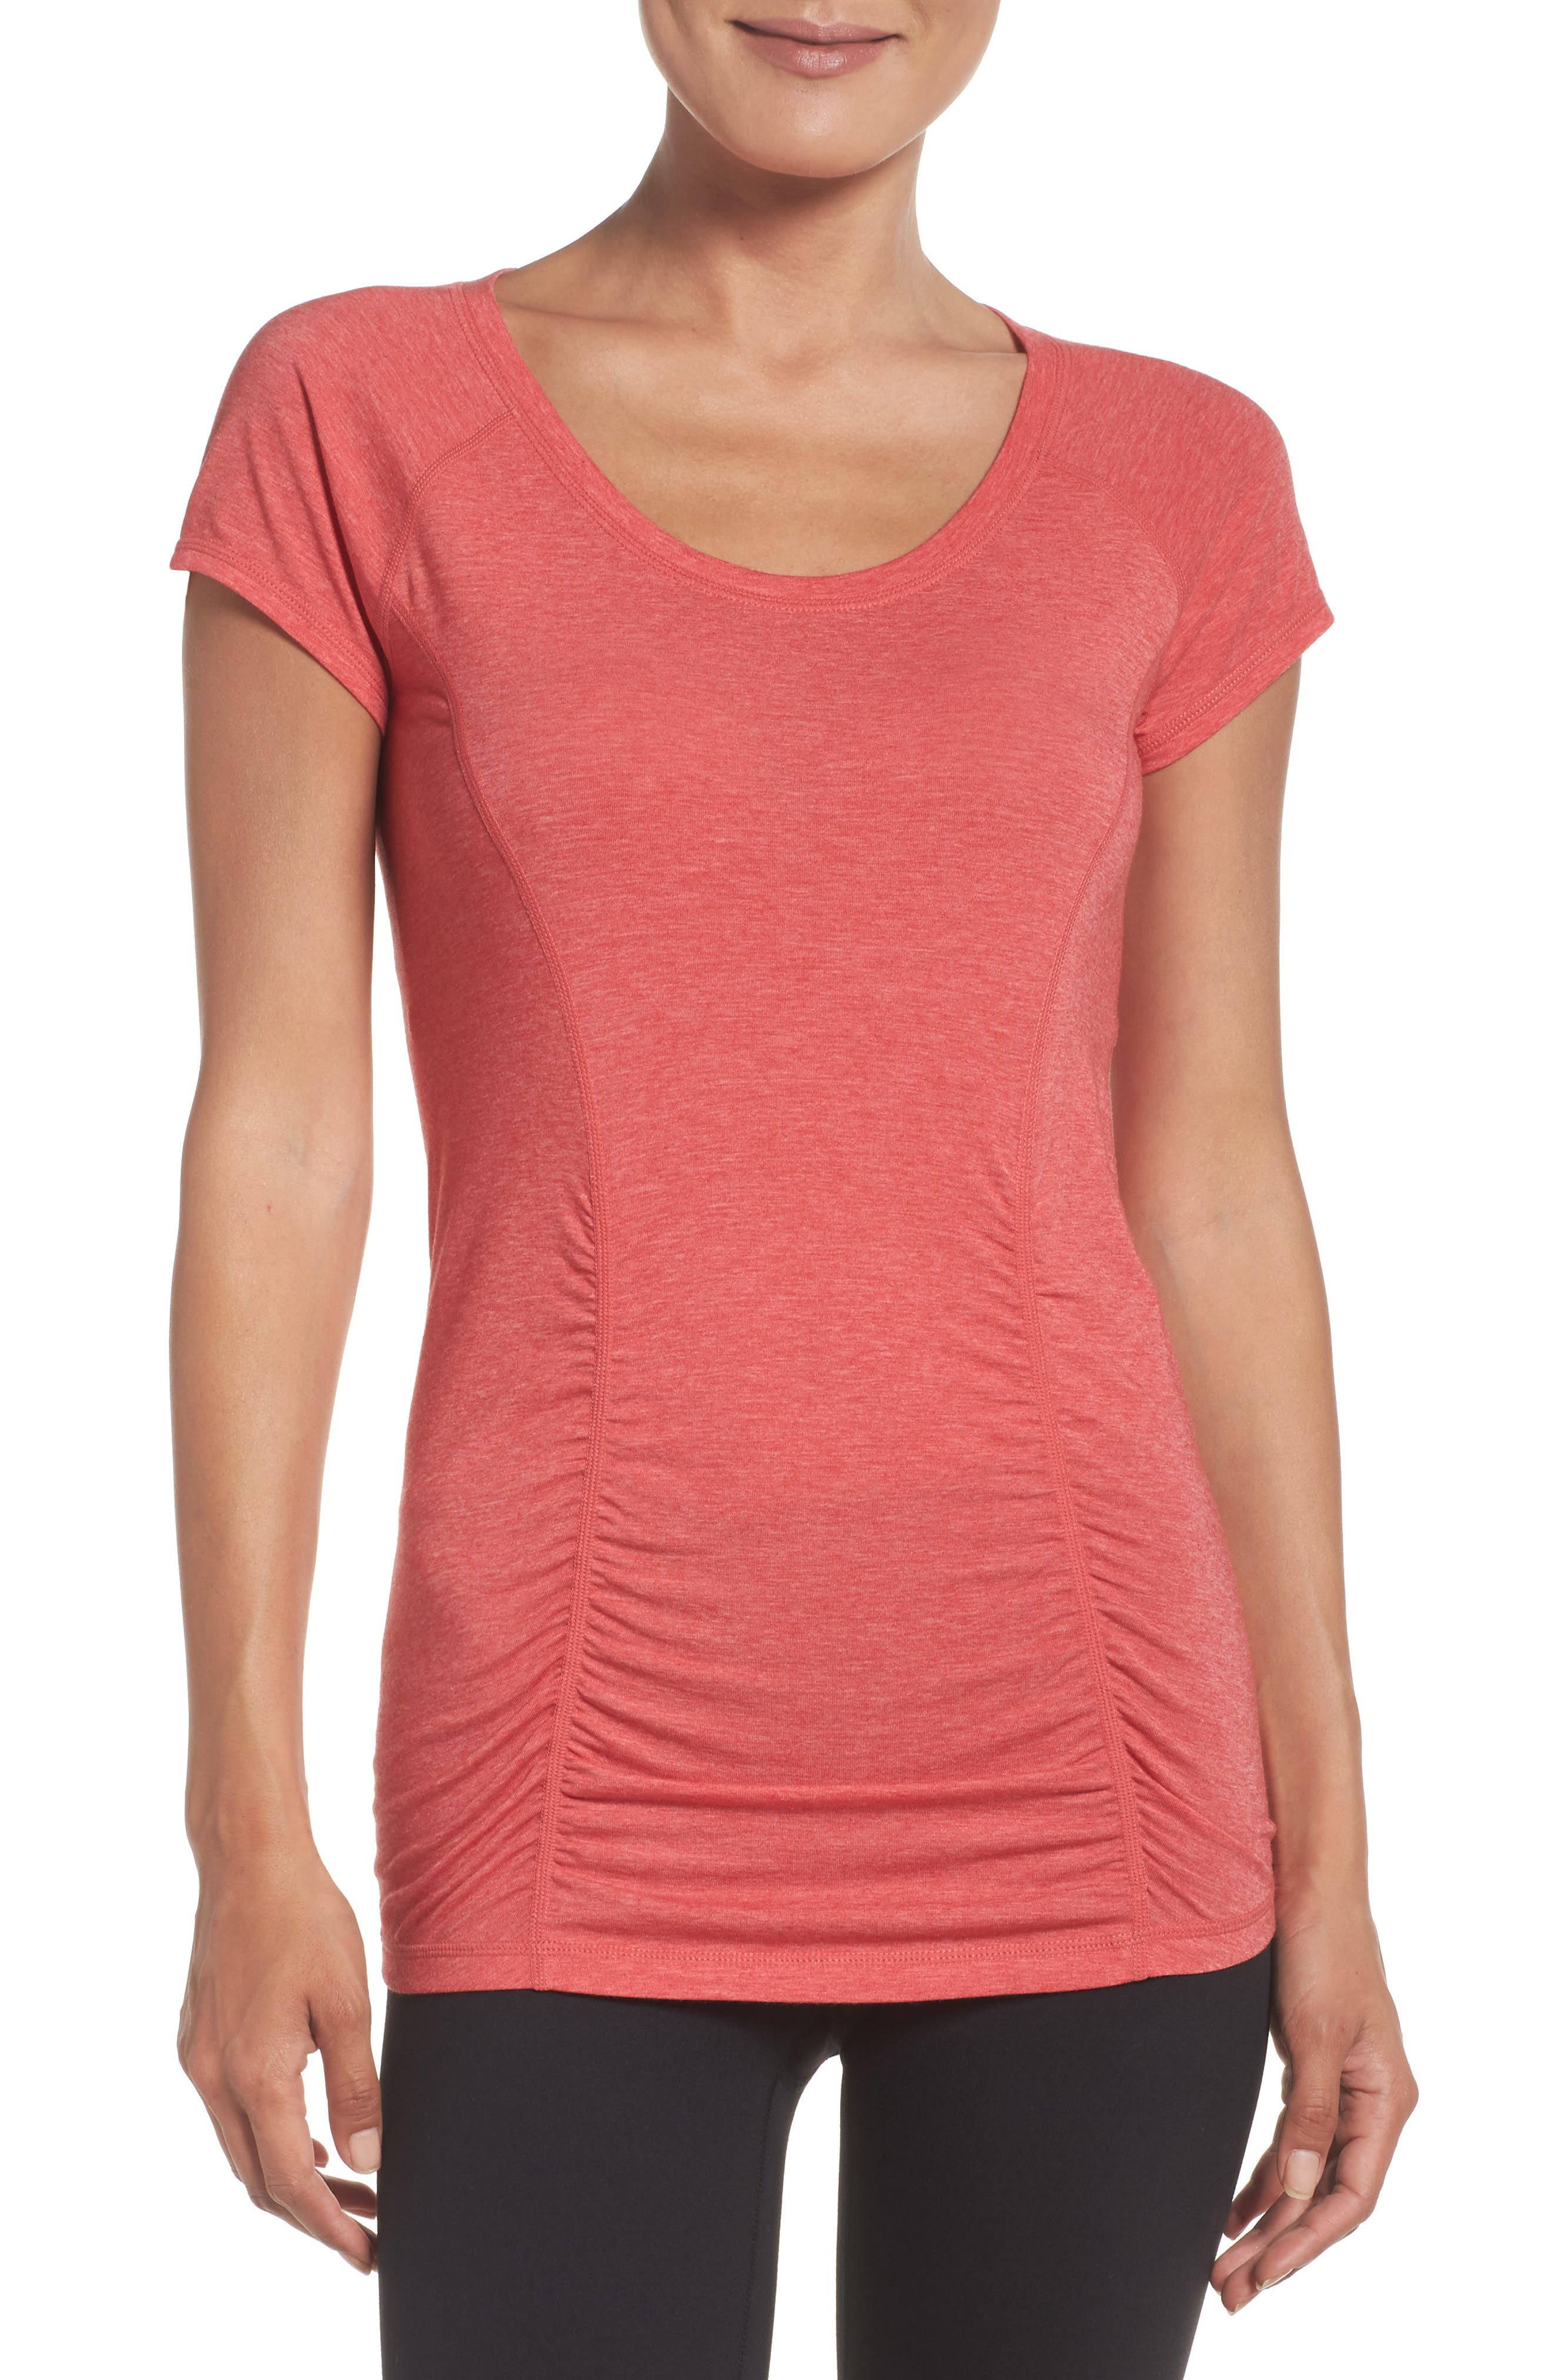 Alternate Image 1 Selected - Zella 'Z 6' Ruched Tee